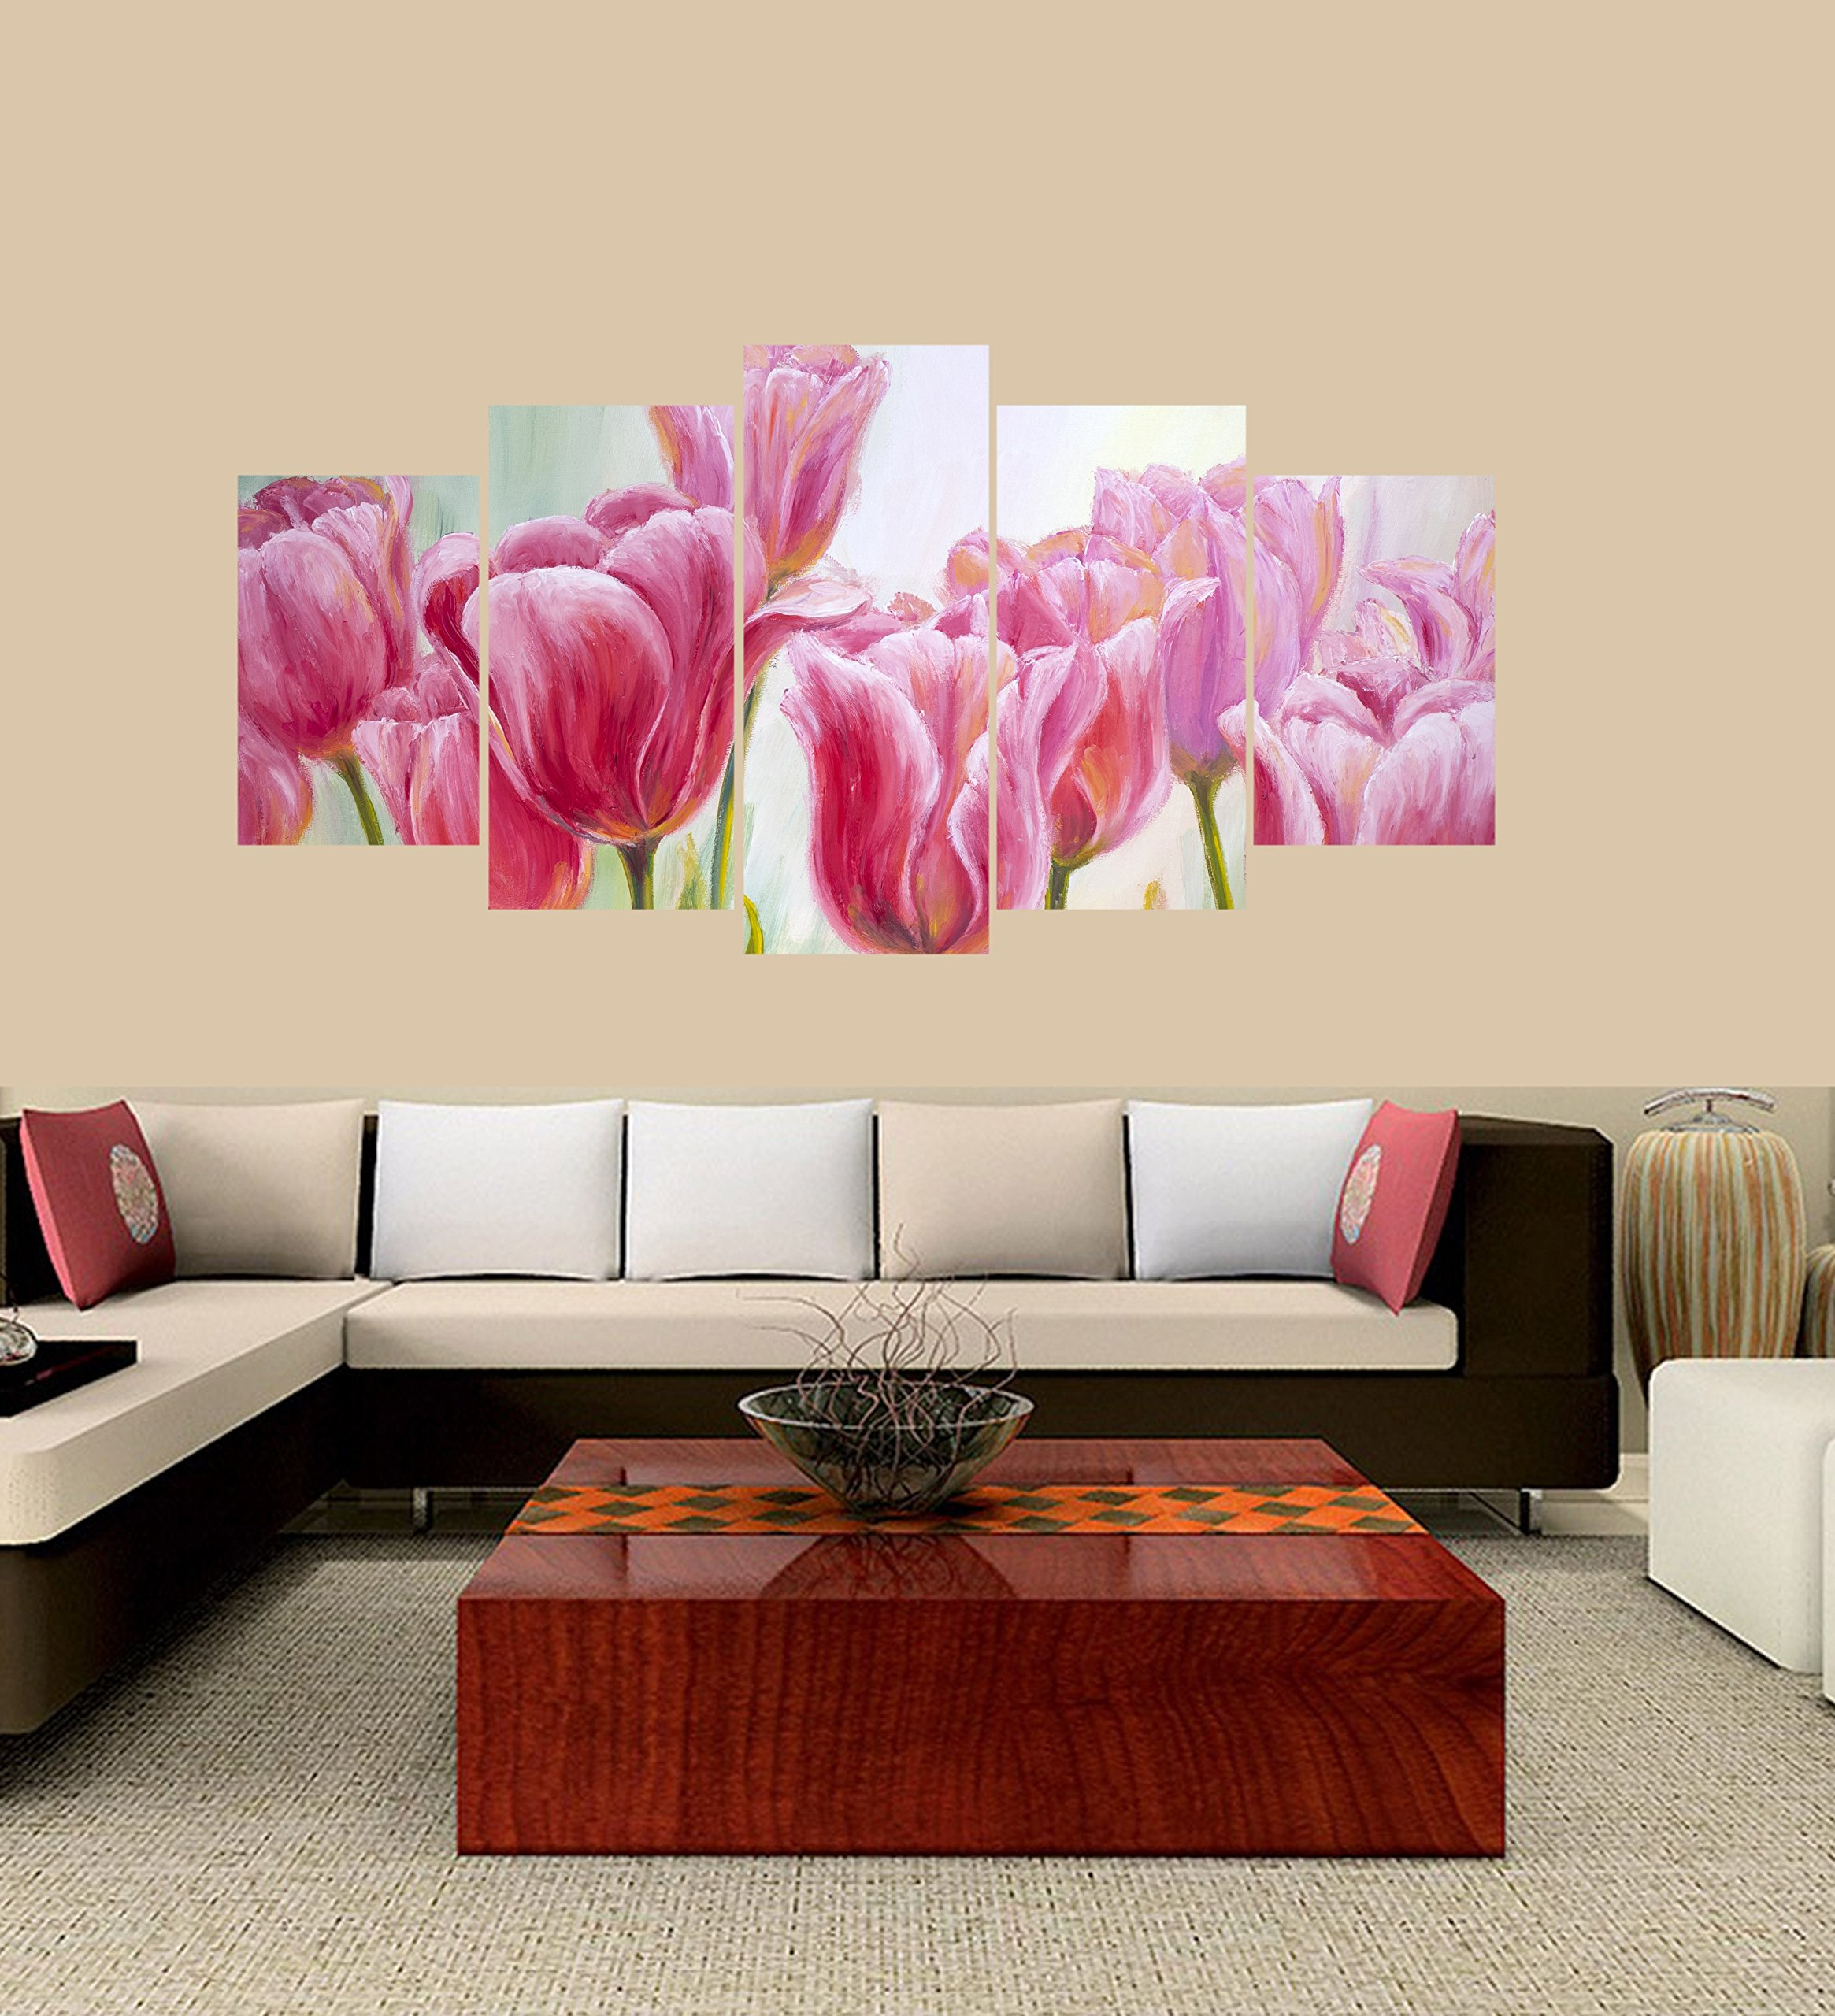 PEACOCK JEWELS Premium Quality Canvas Printed Wall Art Poster 5 Pieces / 5 Pannel Wall Decor Tulips Flowers Painting Painting, Home Decor Pictures - Framed